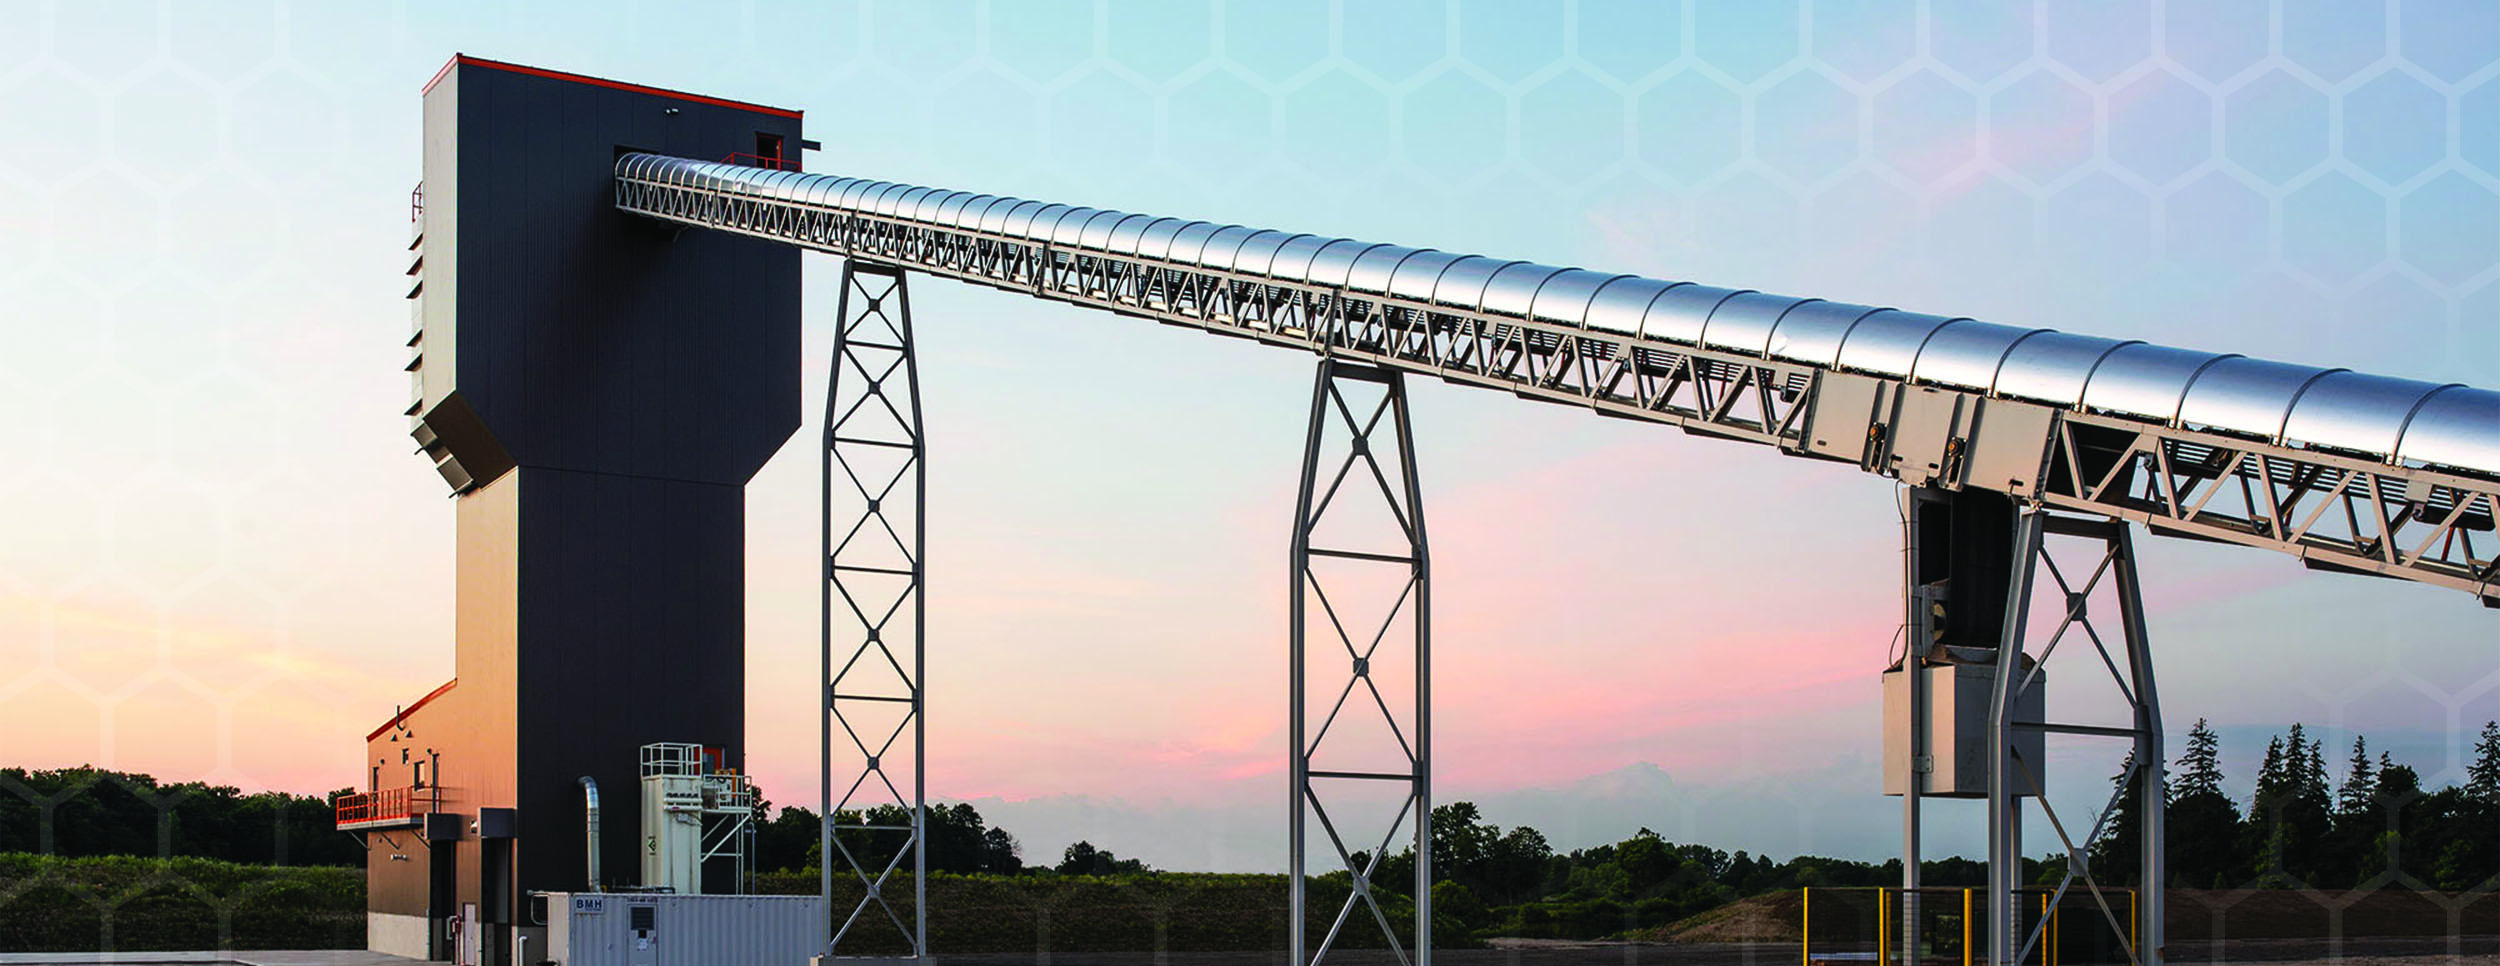 Evening Sunset Photo with a large steel round conveyor raising from the ground on a slant to the top of a tall building. The conveyor is supported by 2 steel tall supports at 2 intervels as it inclines.